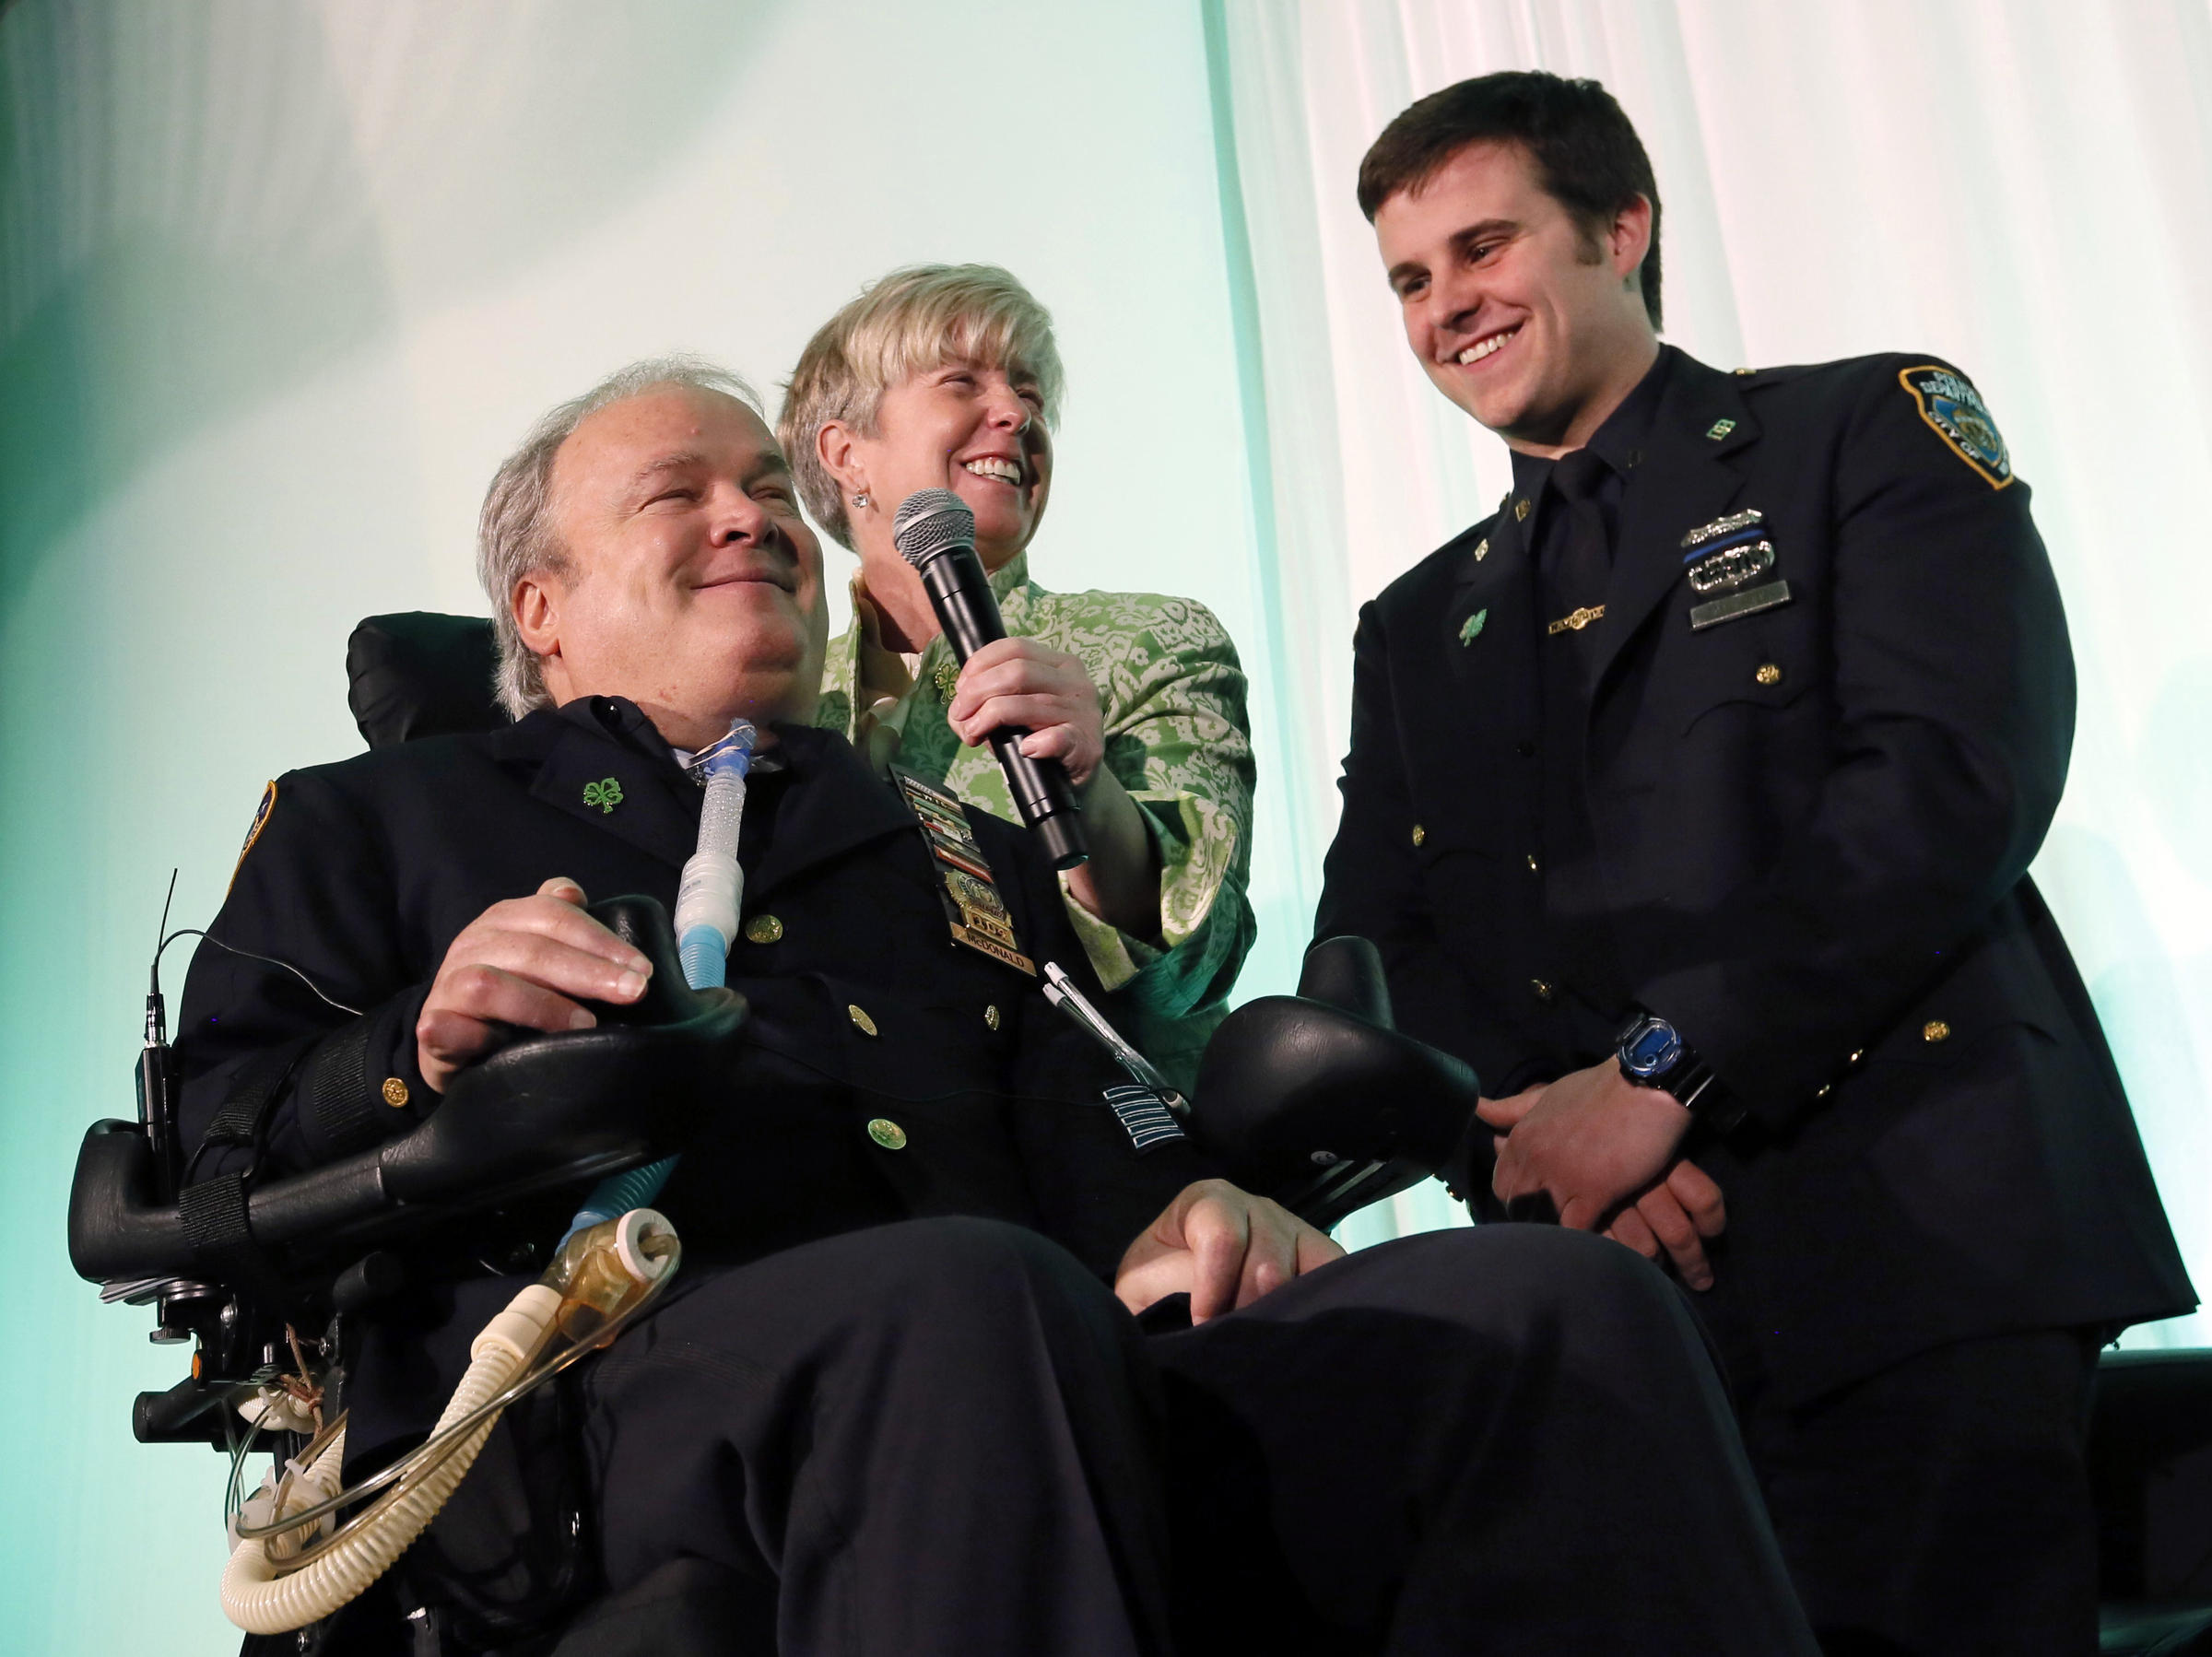 Steven mcdonald a symbol of forgiveness and an nypd icon dies at in march 2015 steven mcdonald gathered with his wife patricia and son biocorpaavc Images